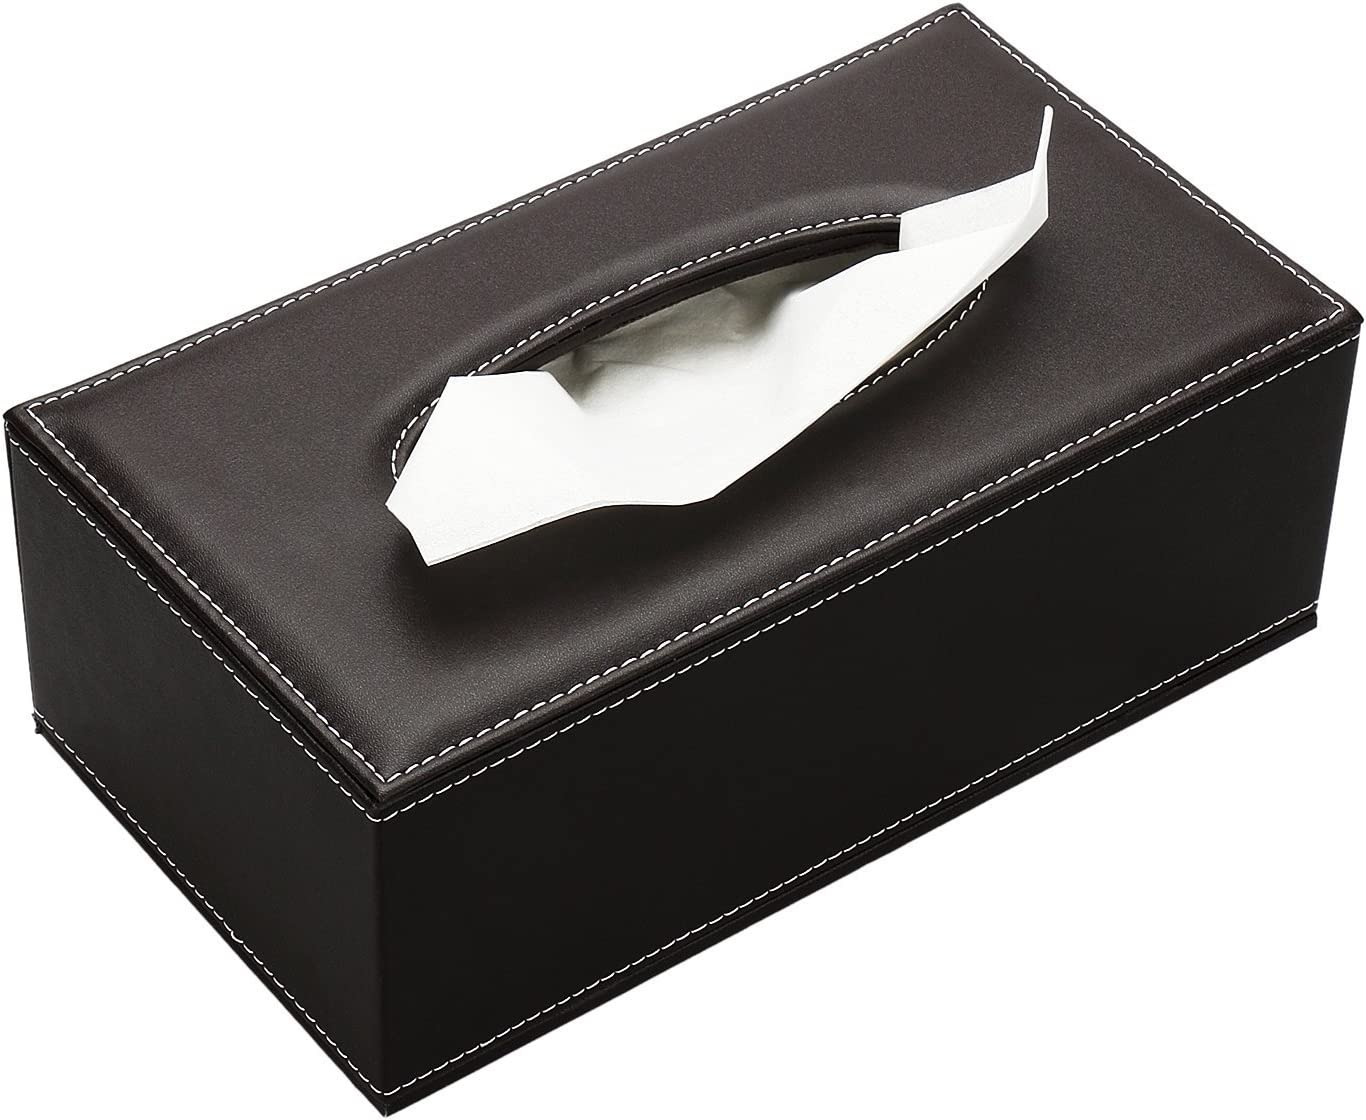 KINGFOM Rectangular Leather Facial Tissue Box Napkin Holder for Home Office, Car Automotive Decoration (Brown PU)